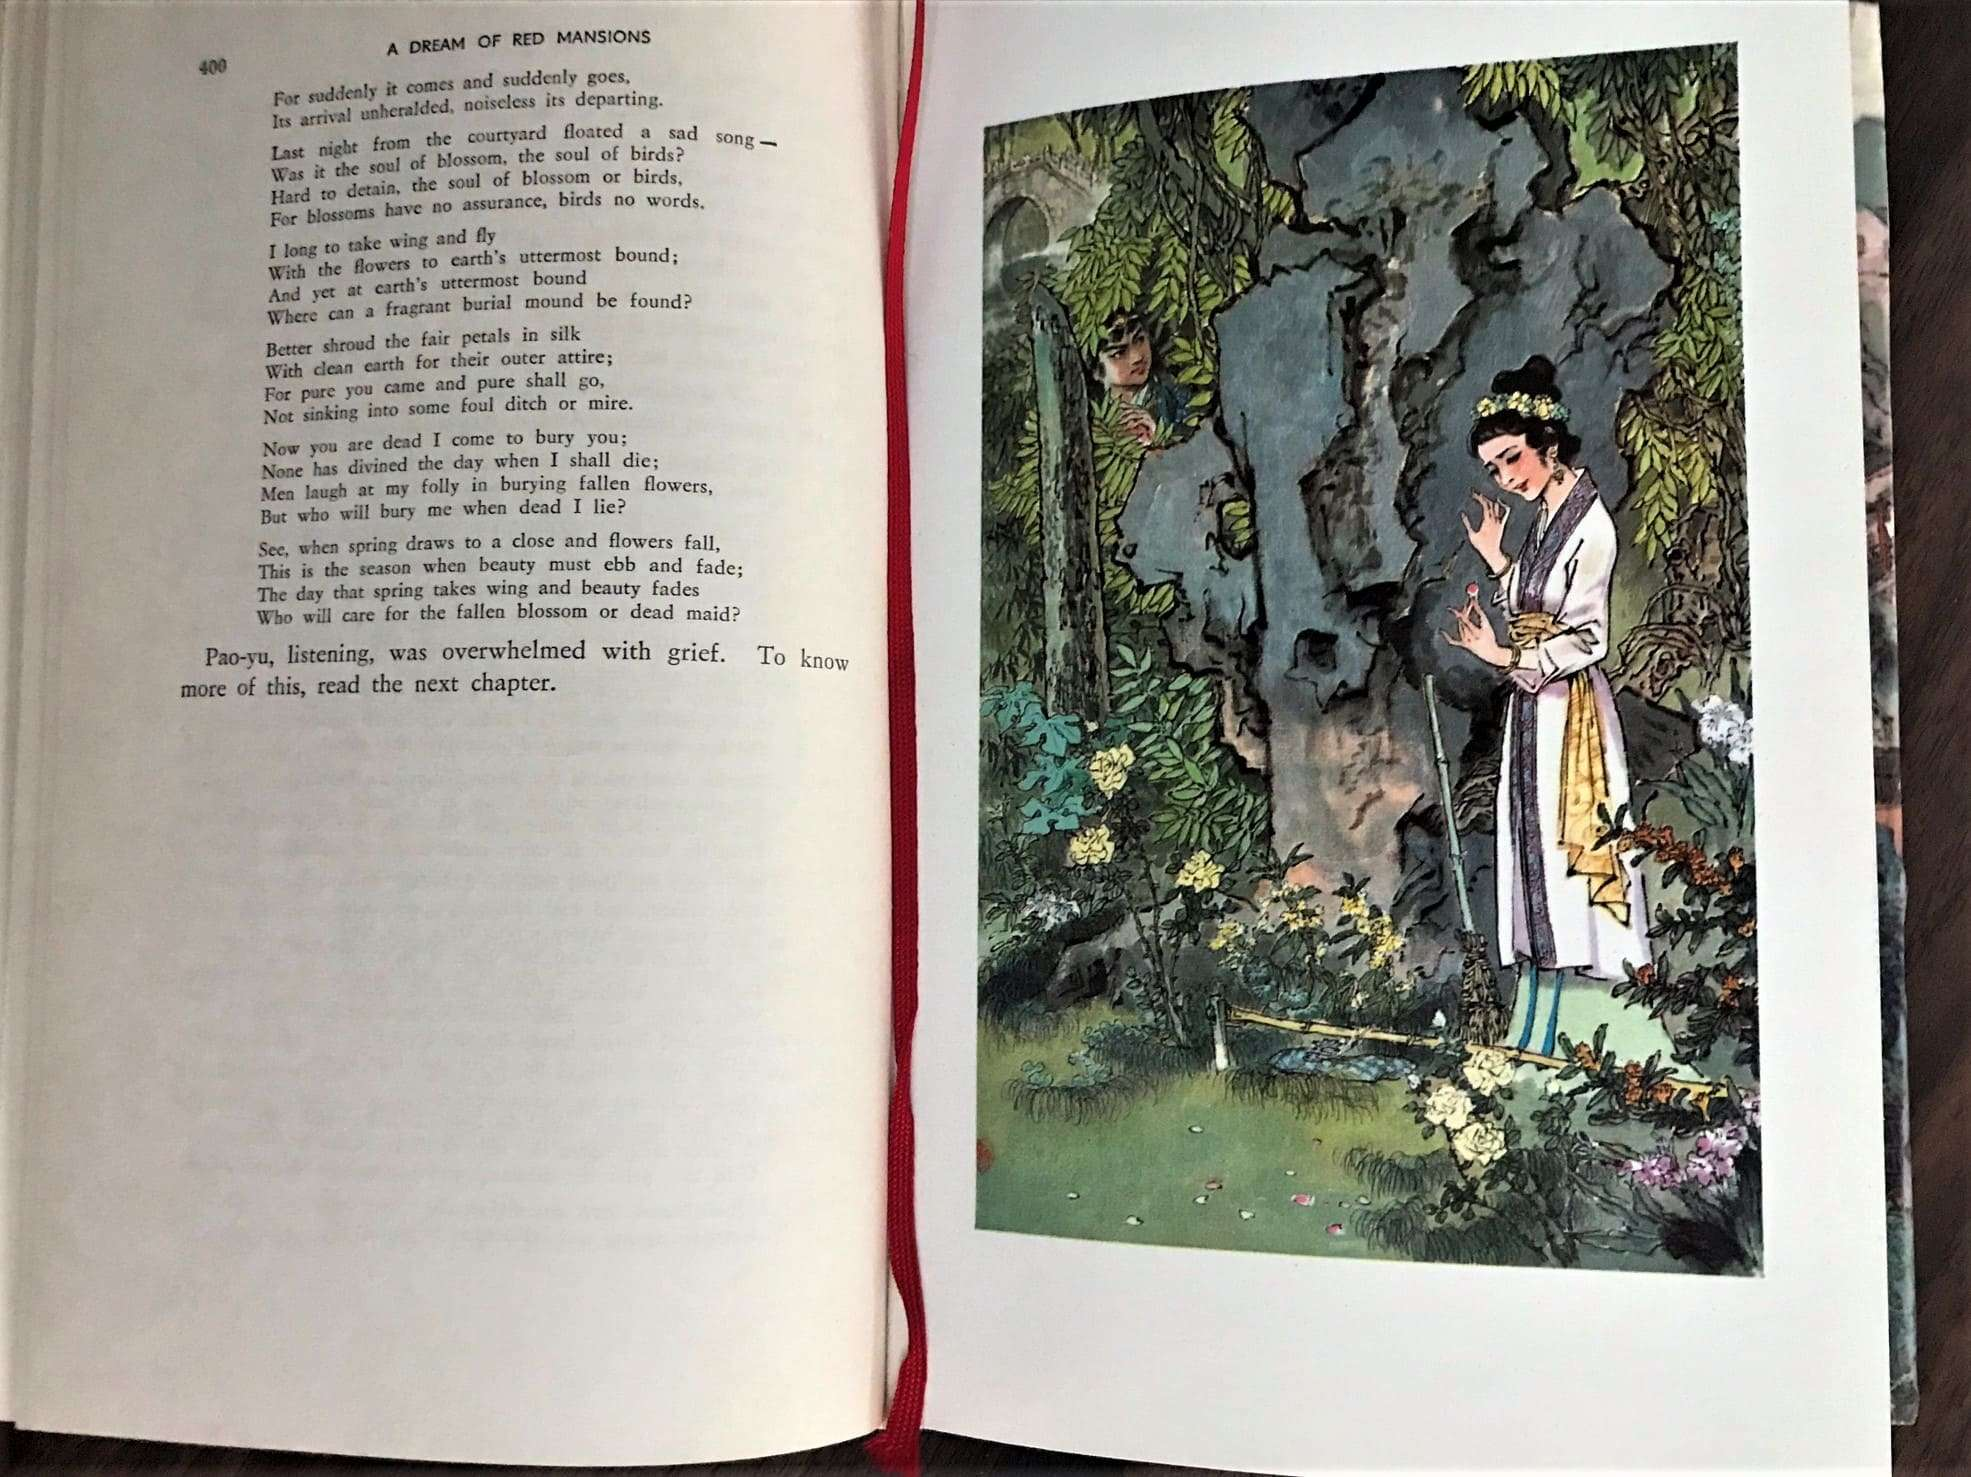 A Dream of Red Mansions - Photo of an illustration and passage from the book